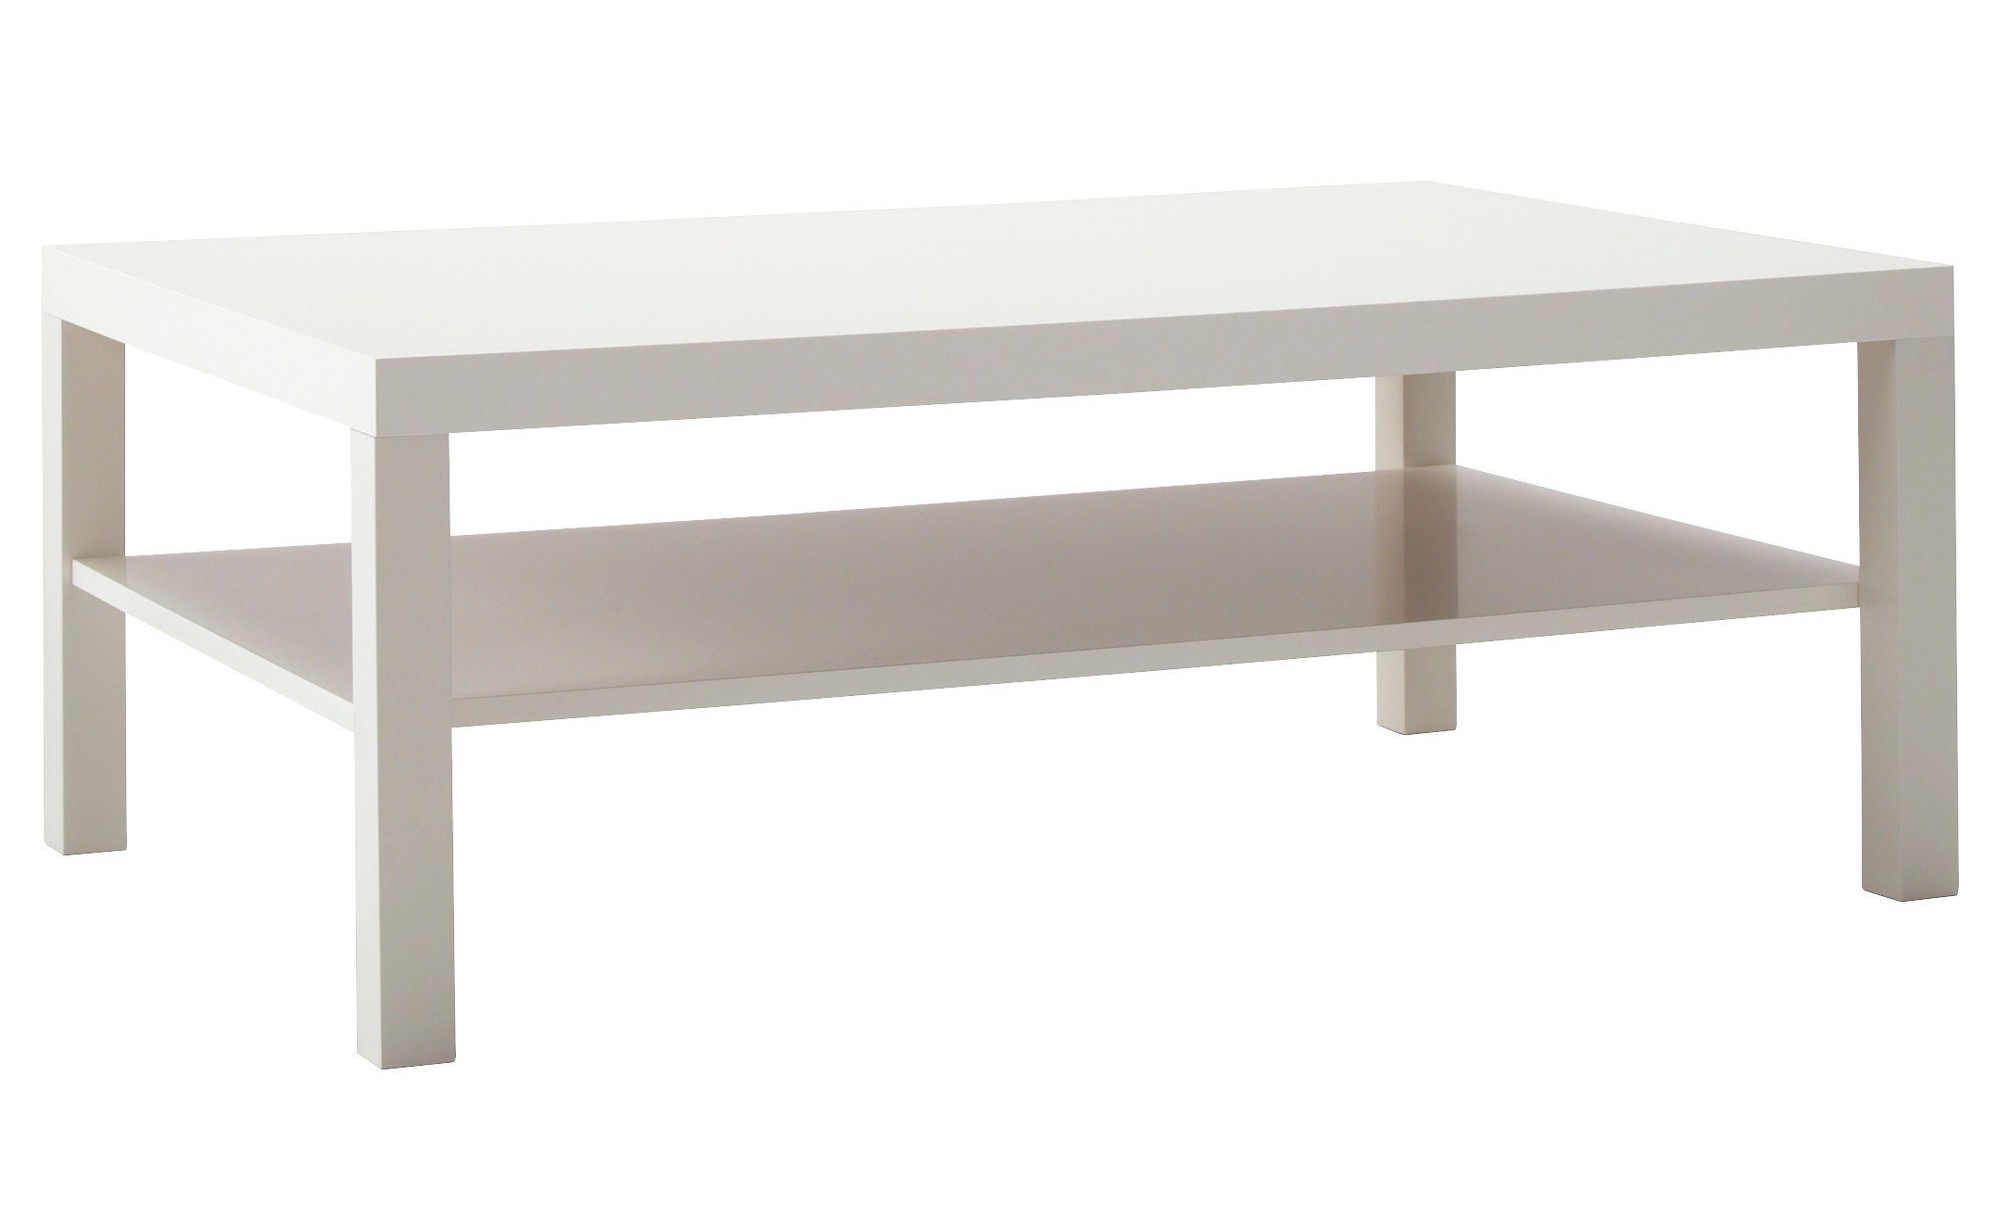 standard sofa table length rowe masquerade sectional average coffee size | roy home design